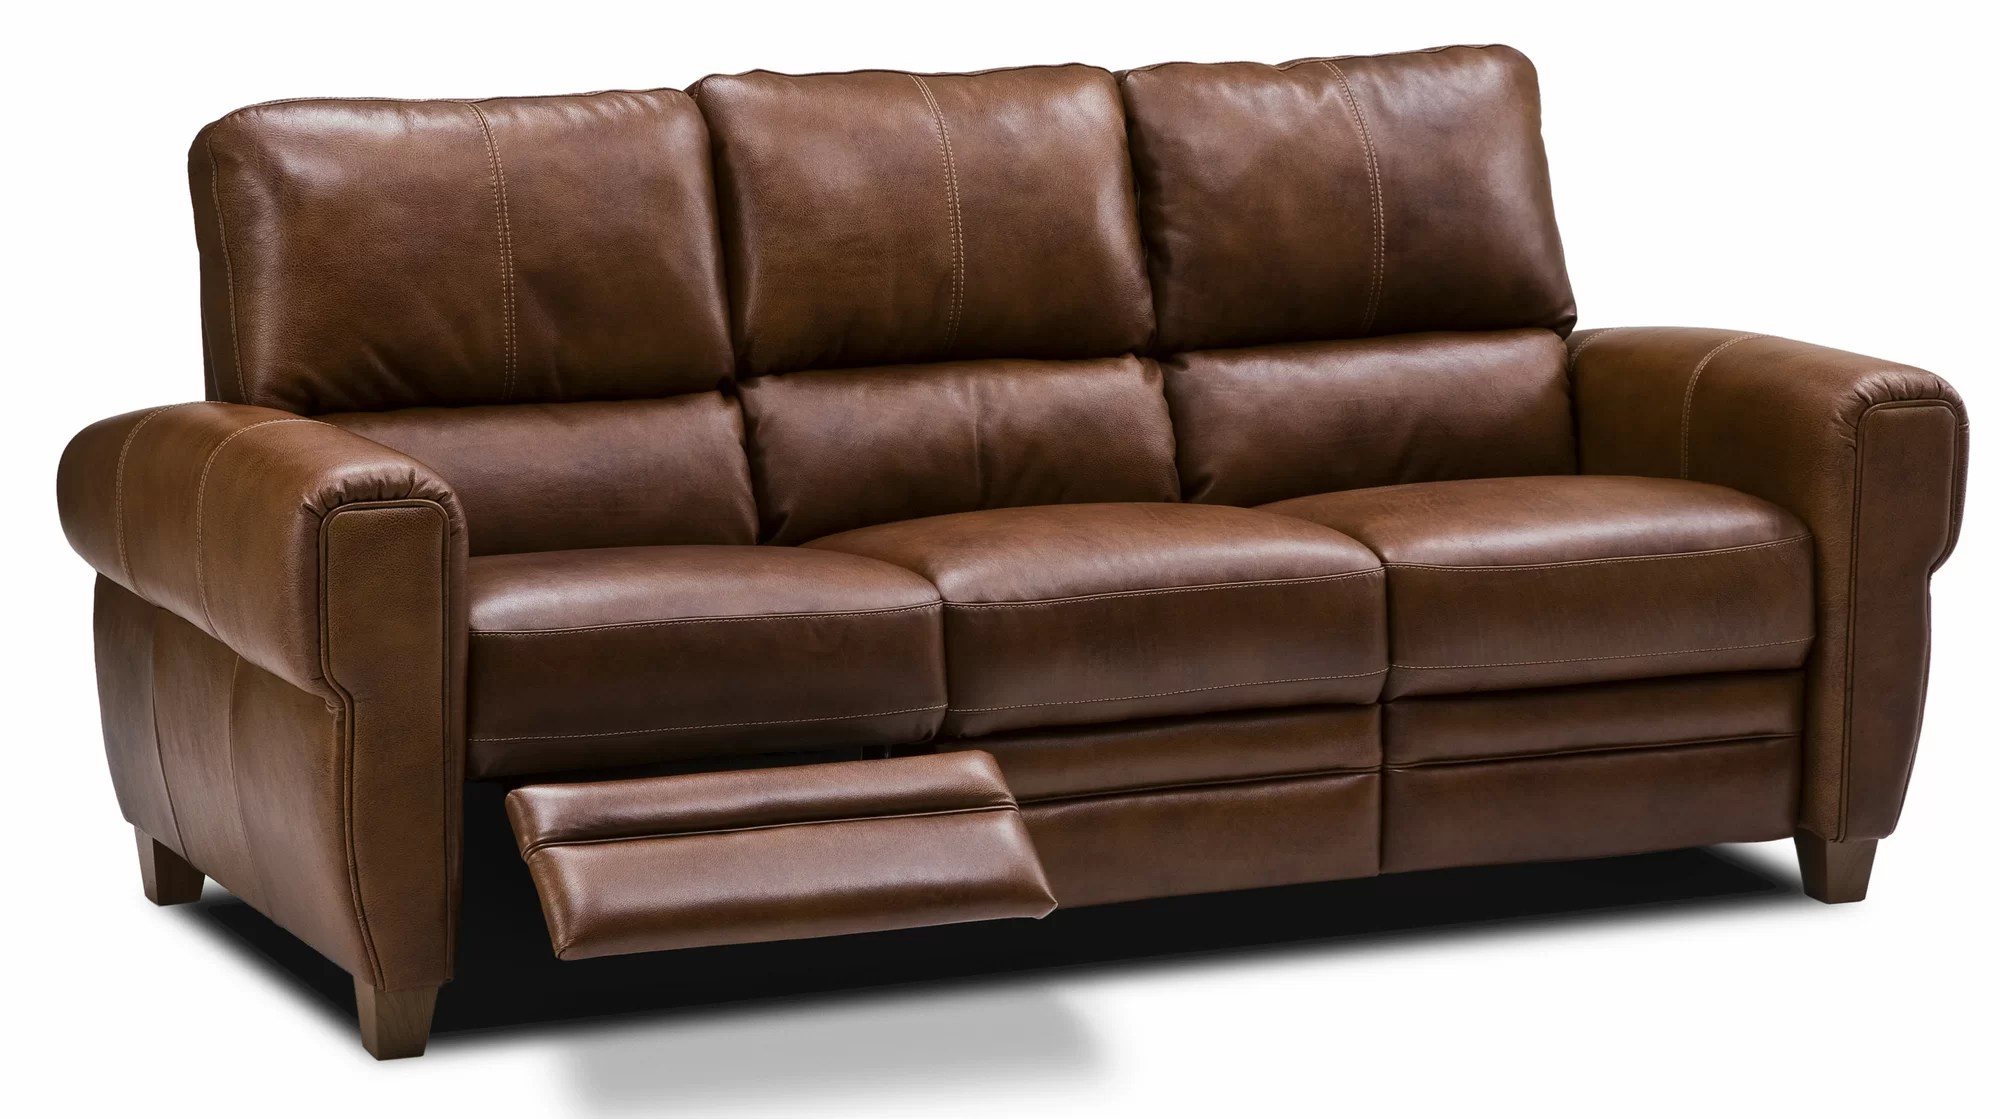 reclining leather sofas dane decor recliner couches living room ideas